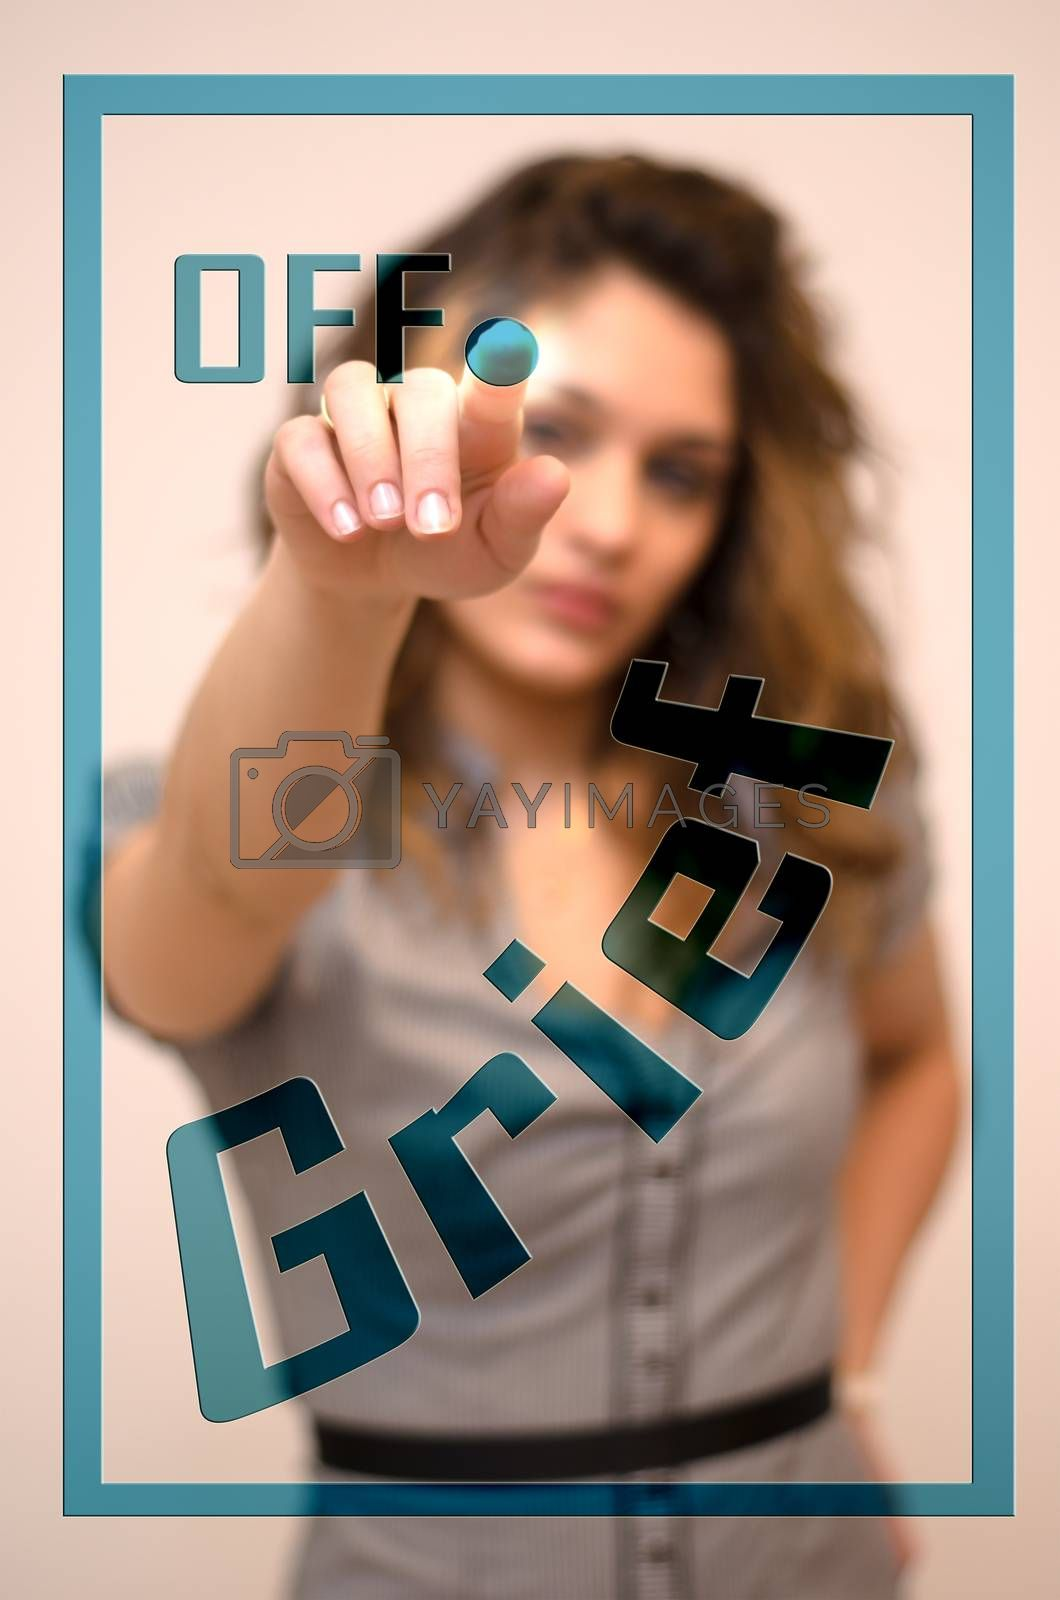 young woman turning offGrief on hologram screen